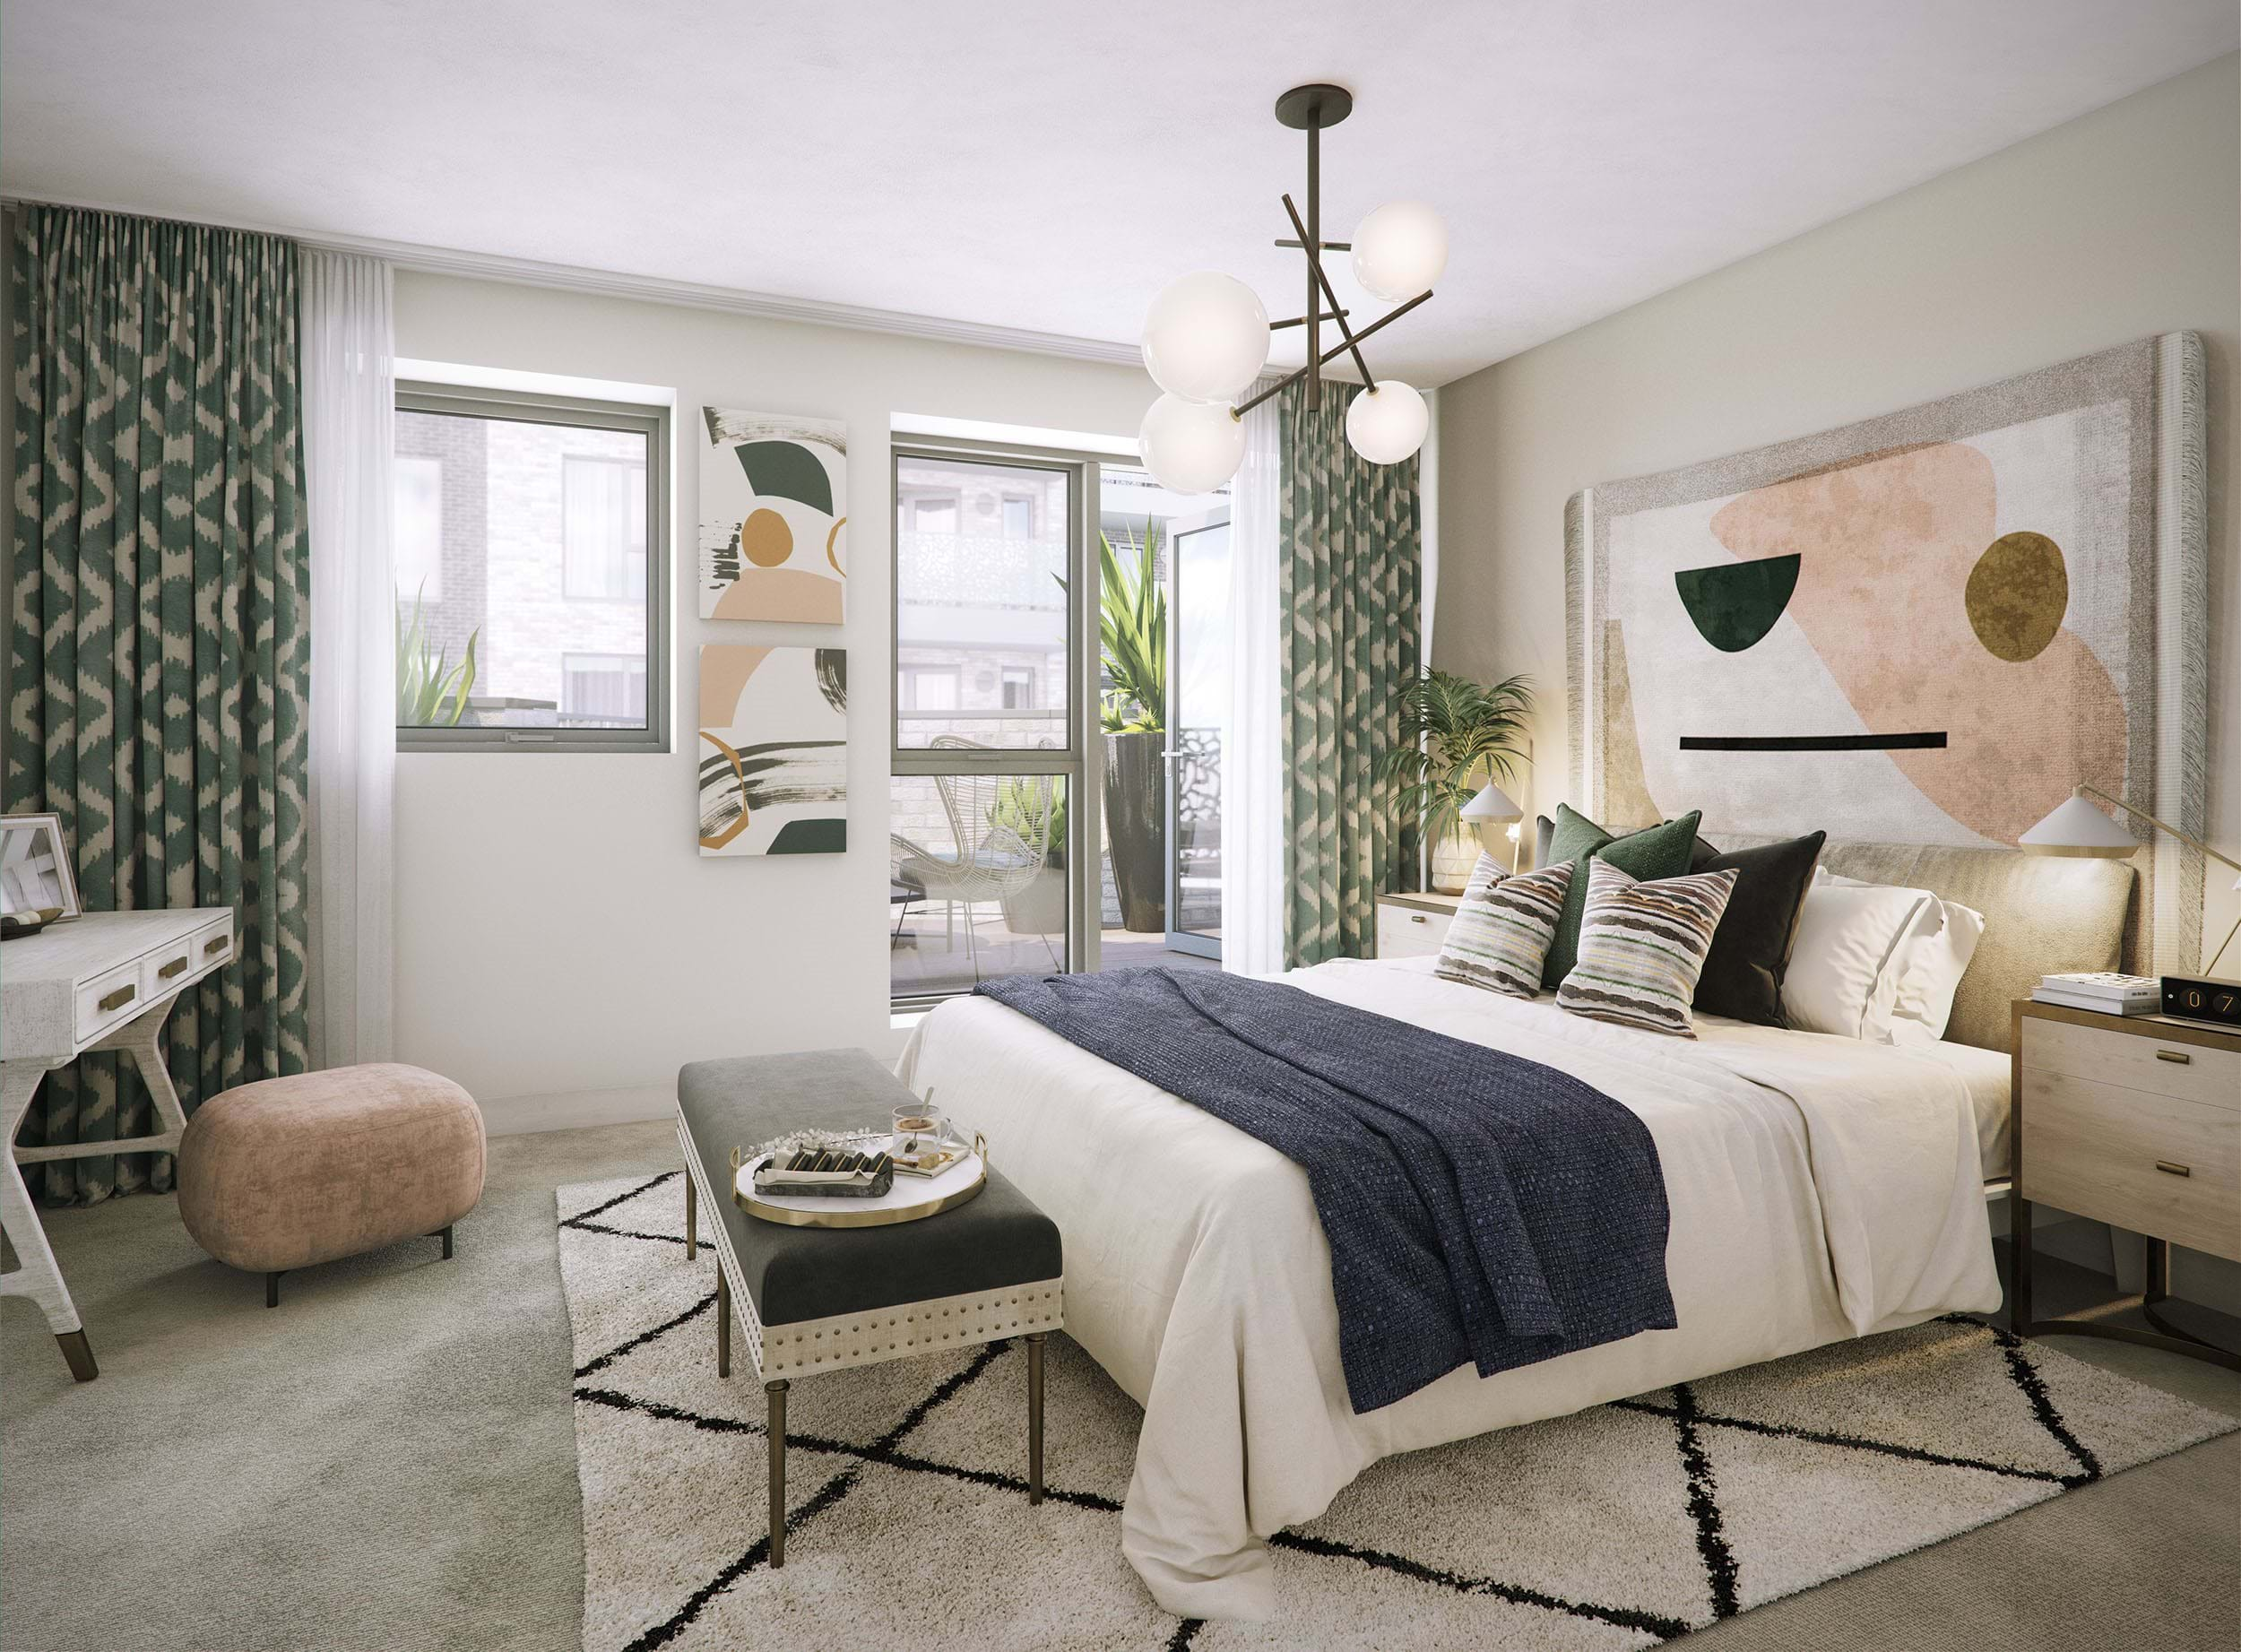 The Pomeroy | Private Sale - Bedroom (CGI)